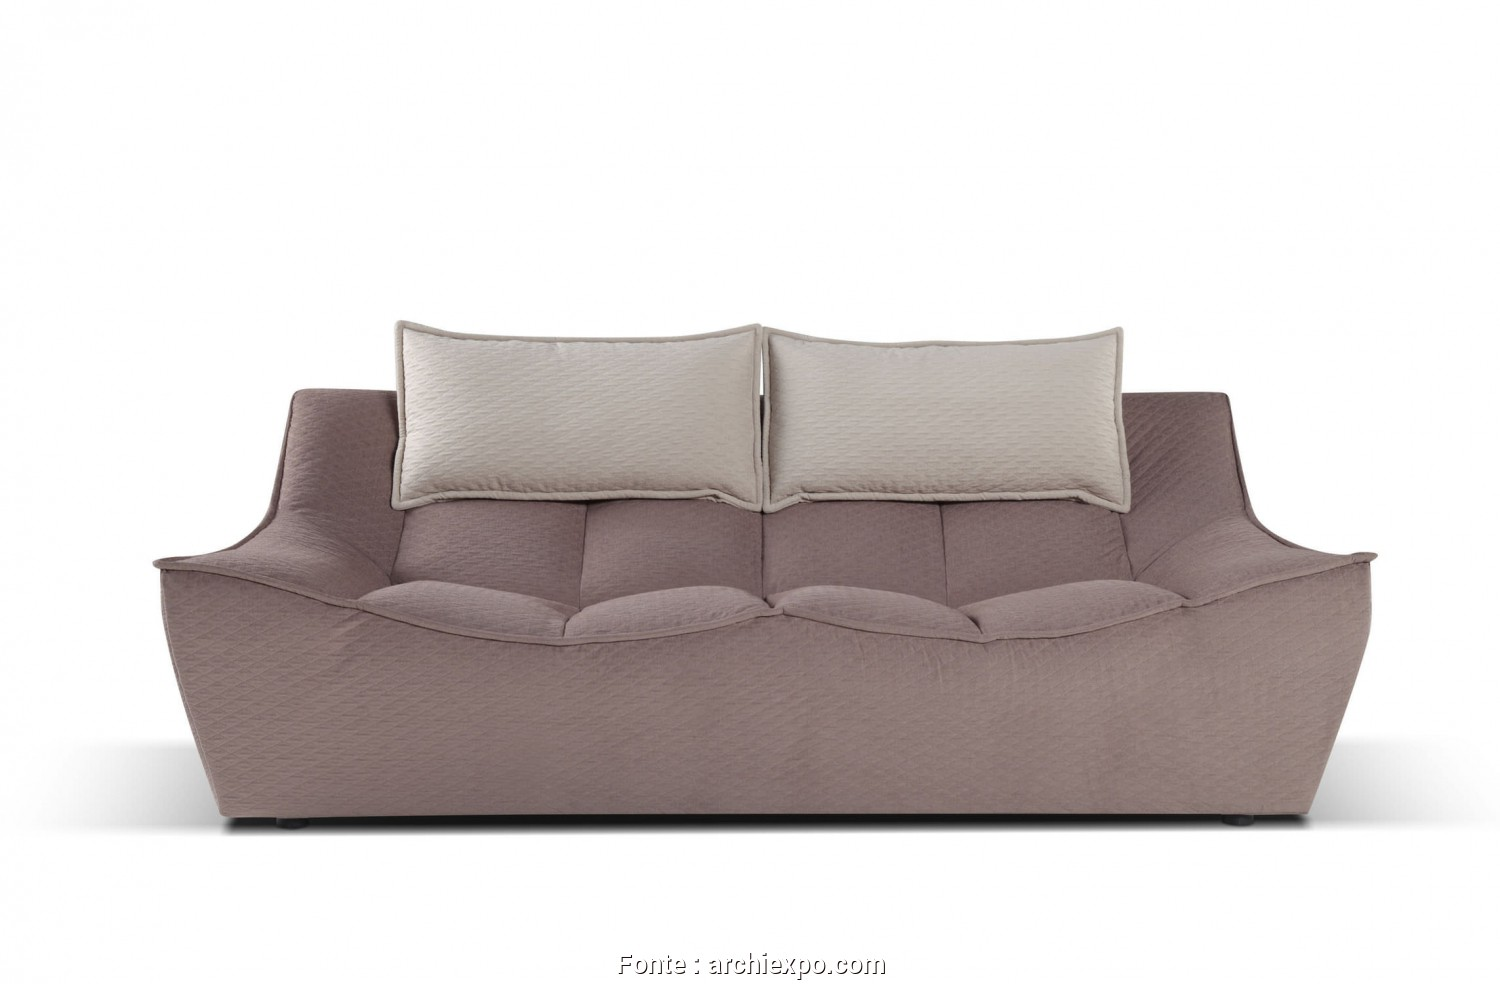 Calia, Hop 830, Divertente Contemporary Sofa / Fabric / 2-Person / Reclining., HOP Caliaitalia